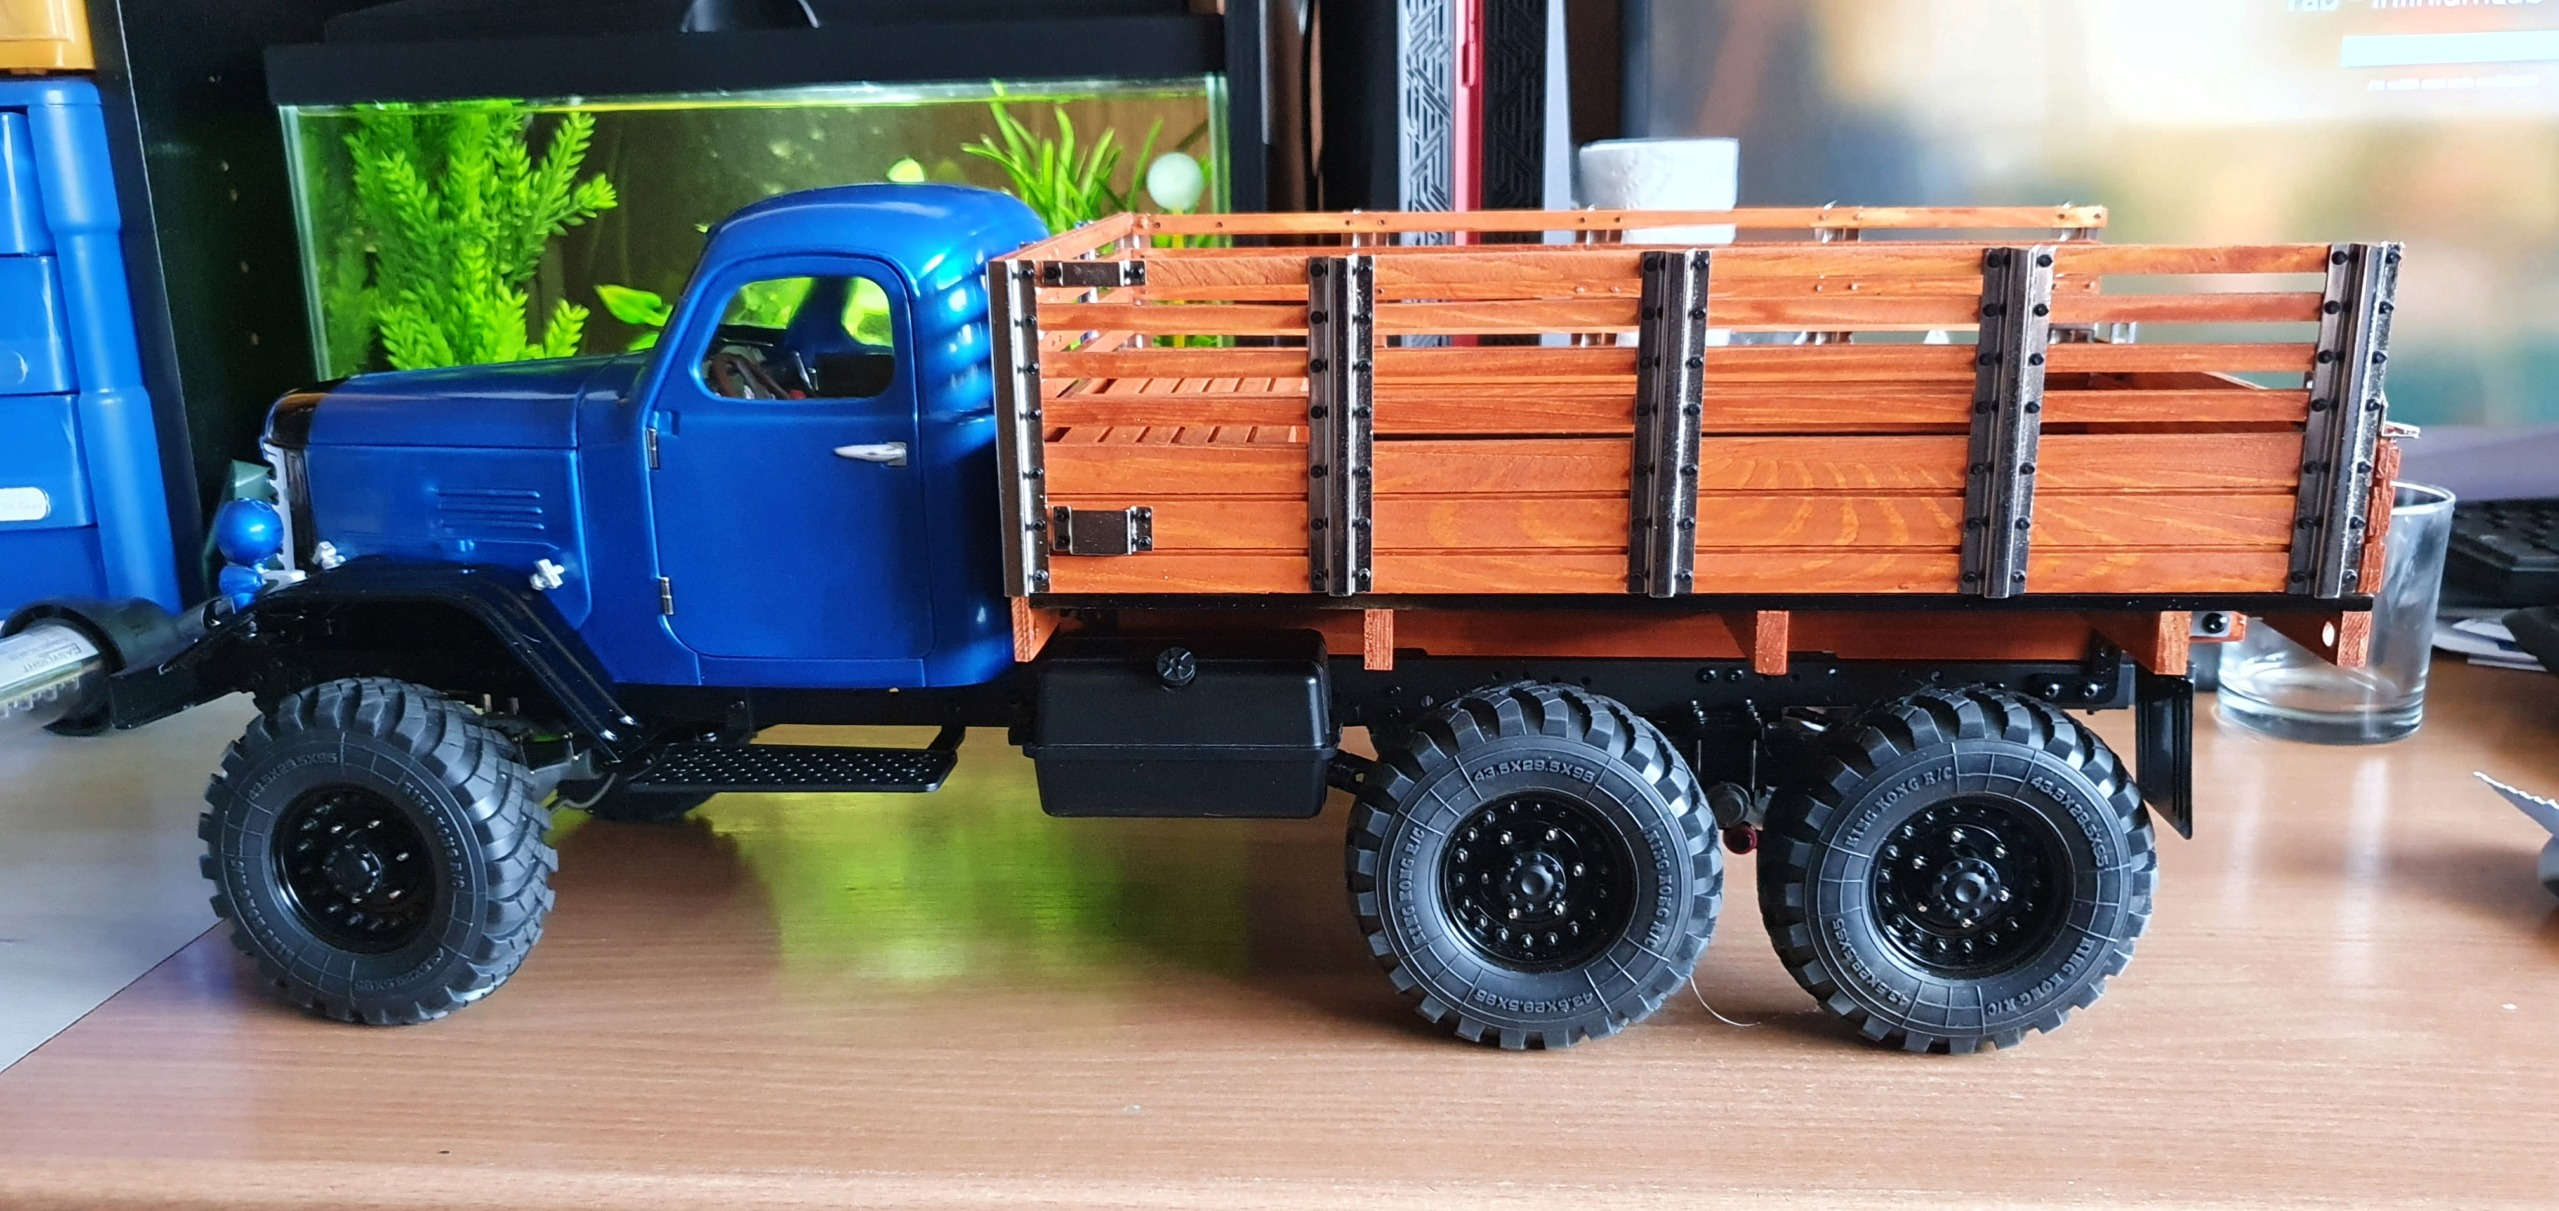 Camion King Kong 6x6 1/12 CA30 Tractor by Fab85 - Page 2 20210518